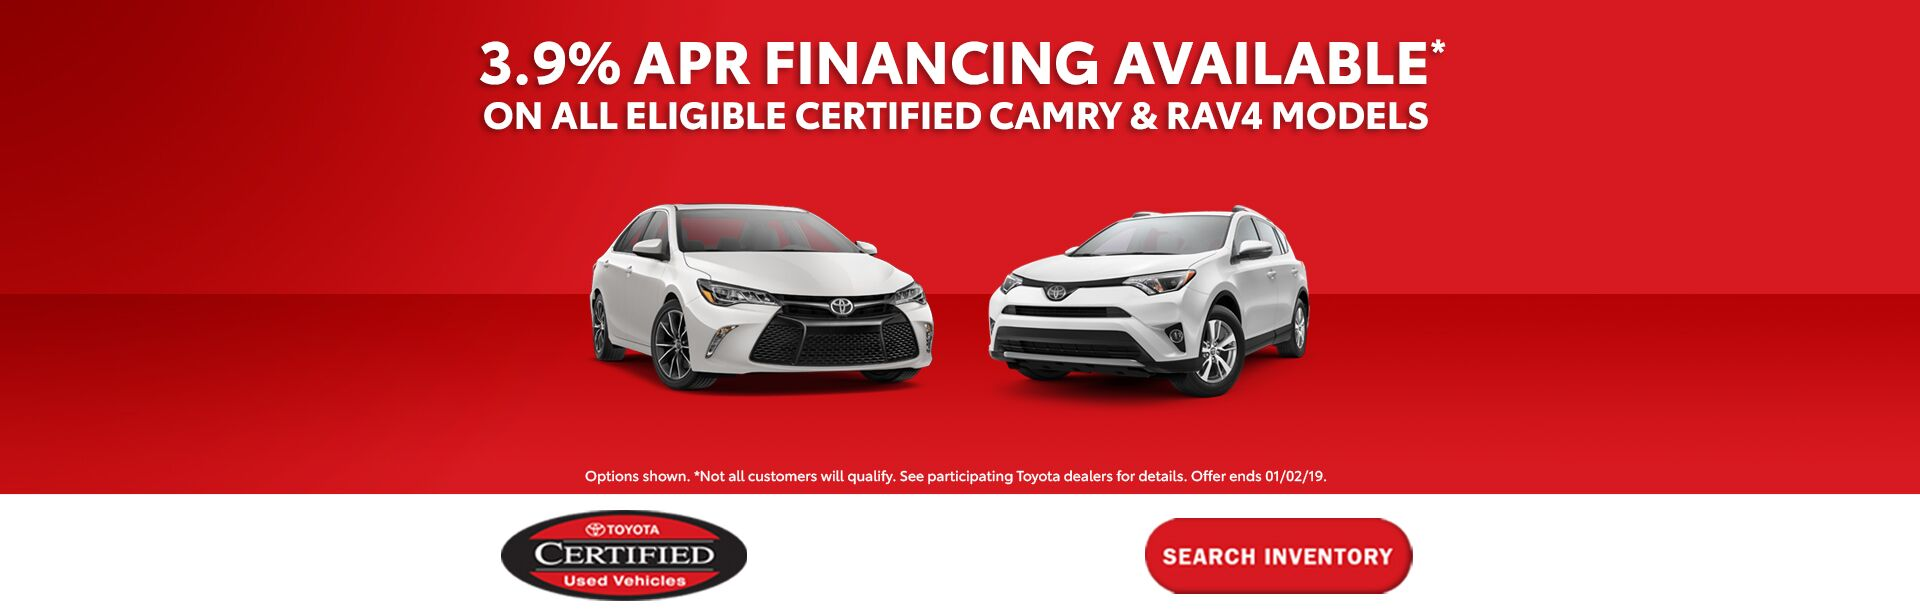 Your Nashville Tn New Toyota Used Car Dealership Fuel Filter Location On 2006 Camry Tcuv Nov 2018